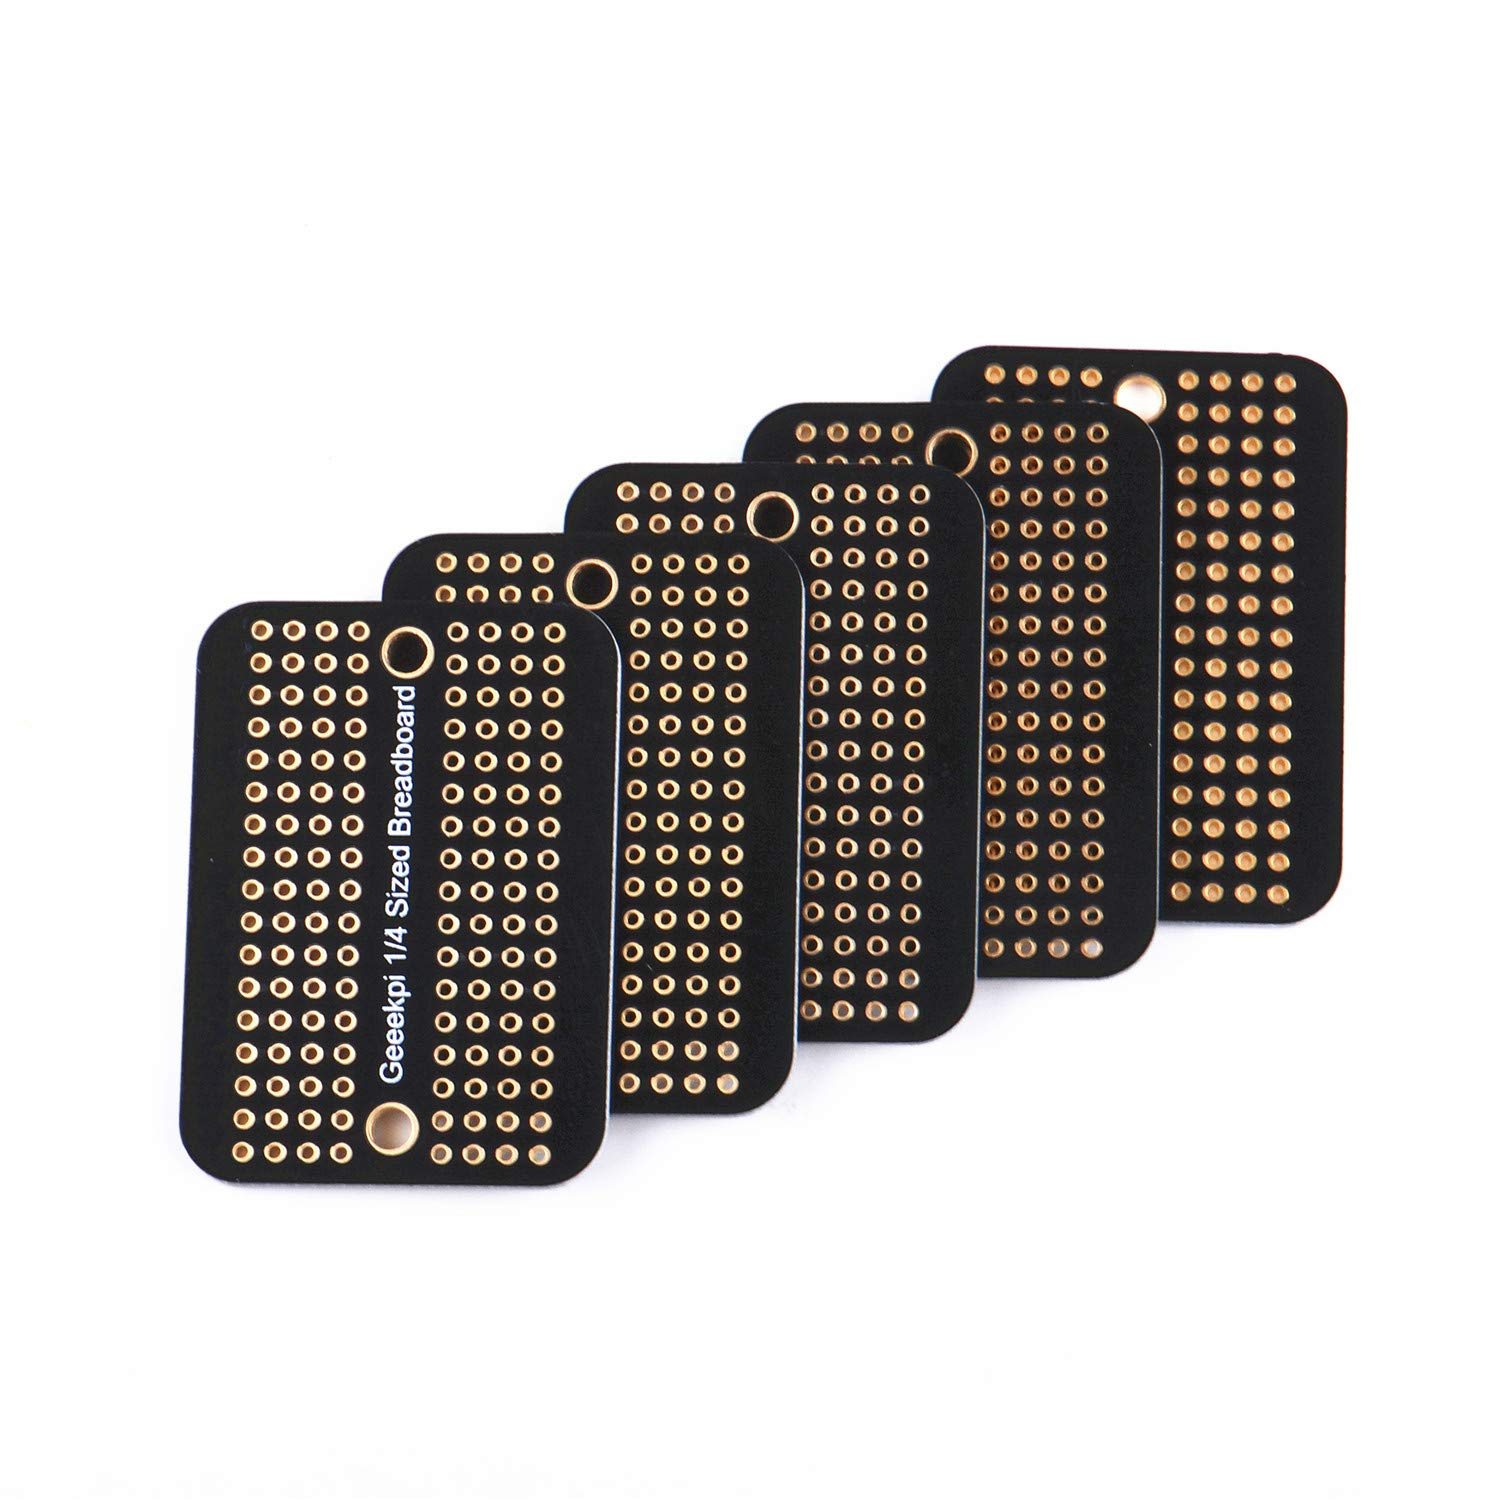 GeeekPi Proto Breadboard PCB Board Gold Plated Experimental Breadboard Soldering Board Double-Sided PCB DIY Kit for Arduino (Pack of 5PCS) (Half Size)